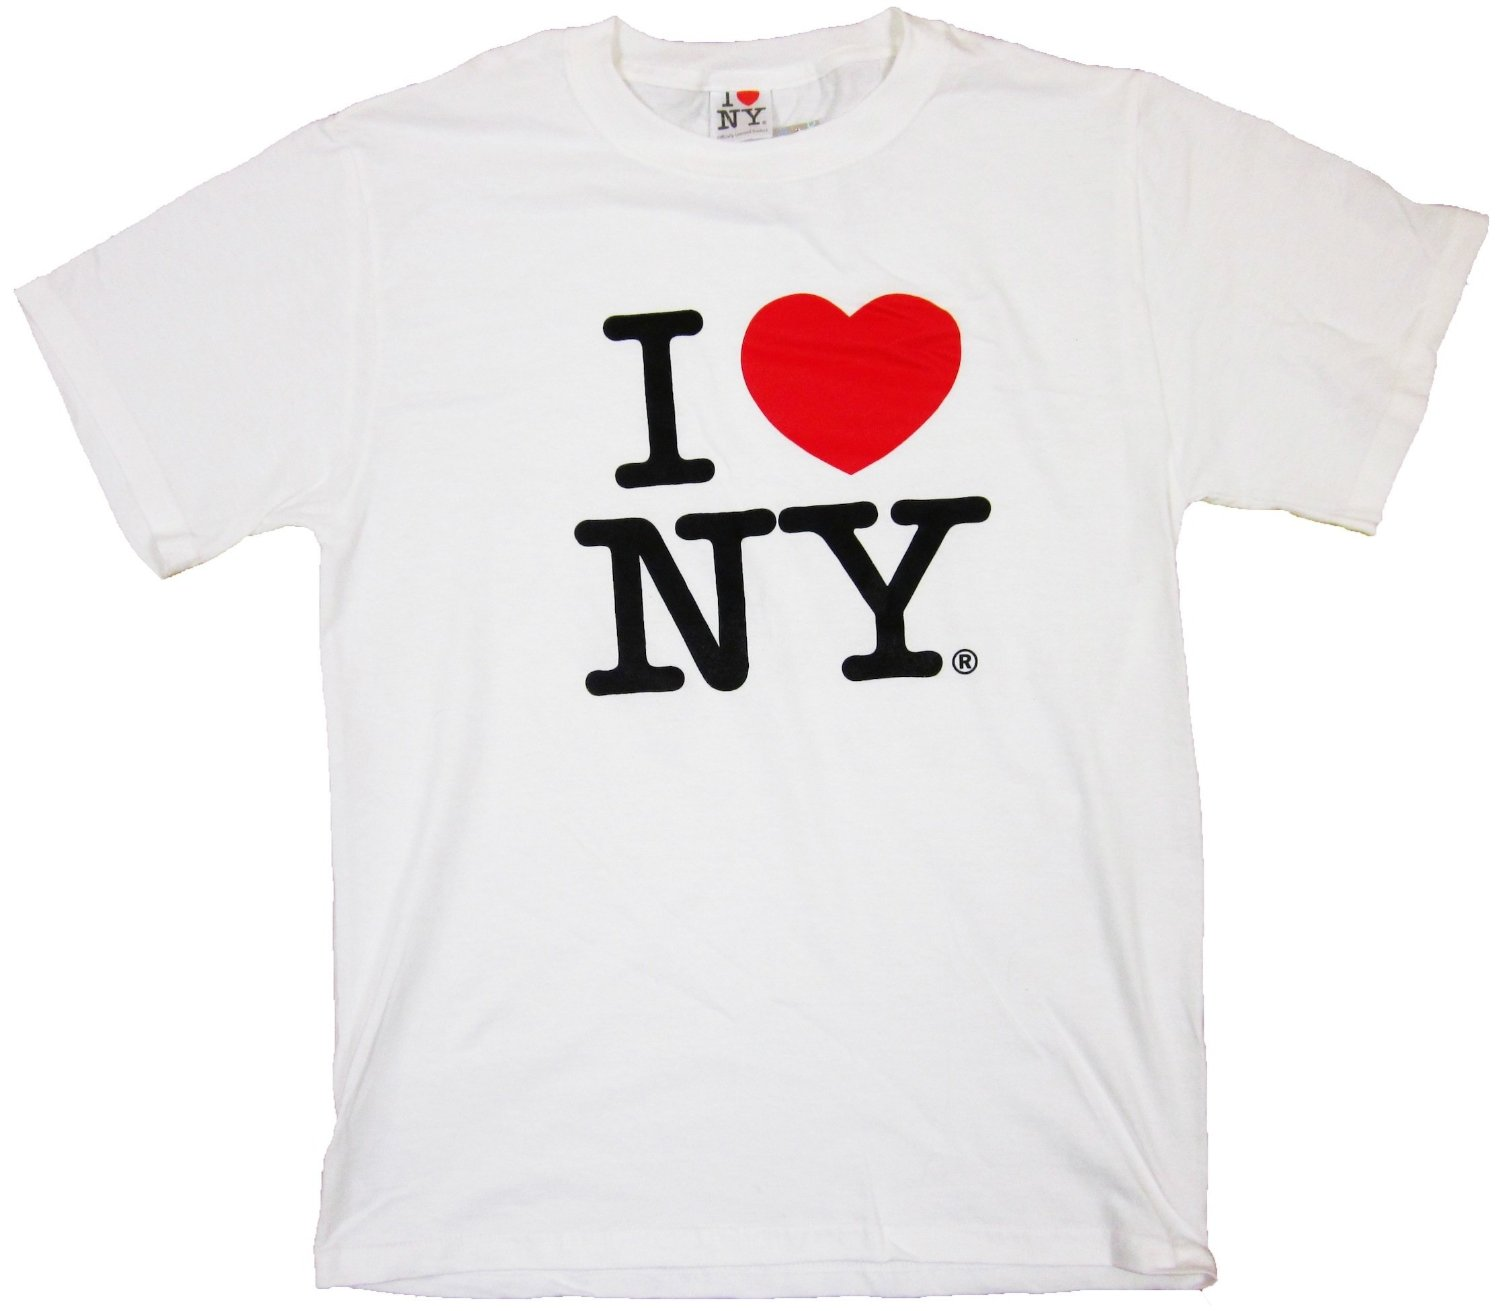 Iconic t shirt design - I Love NY T-shirt